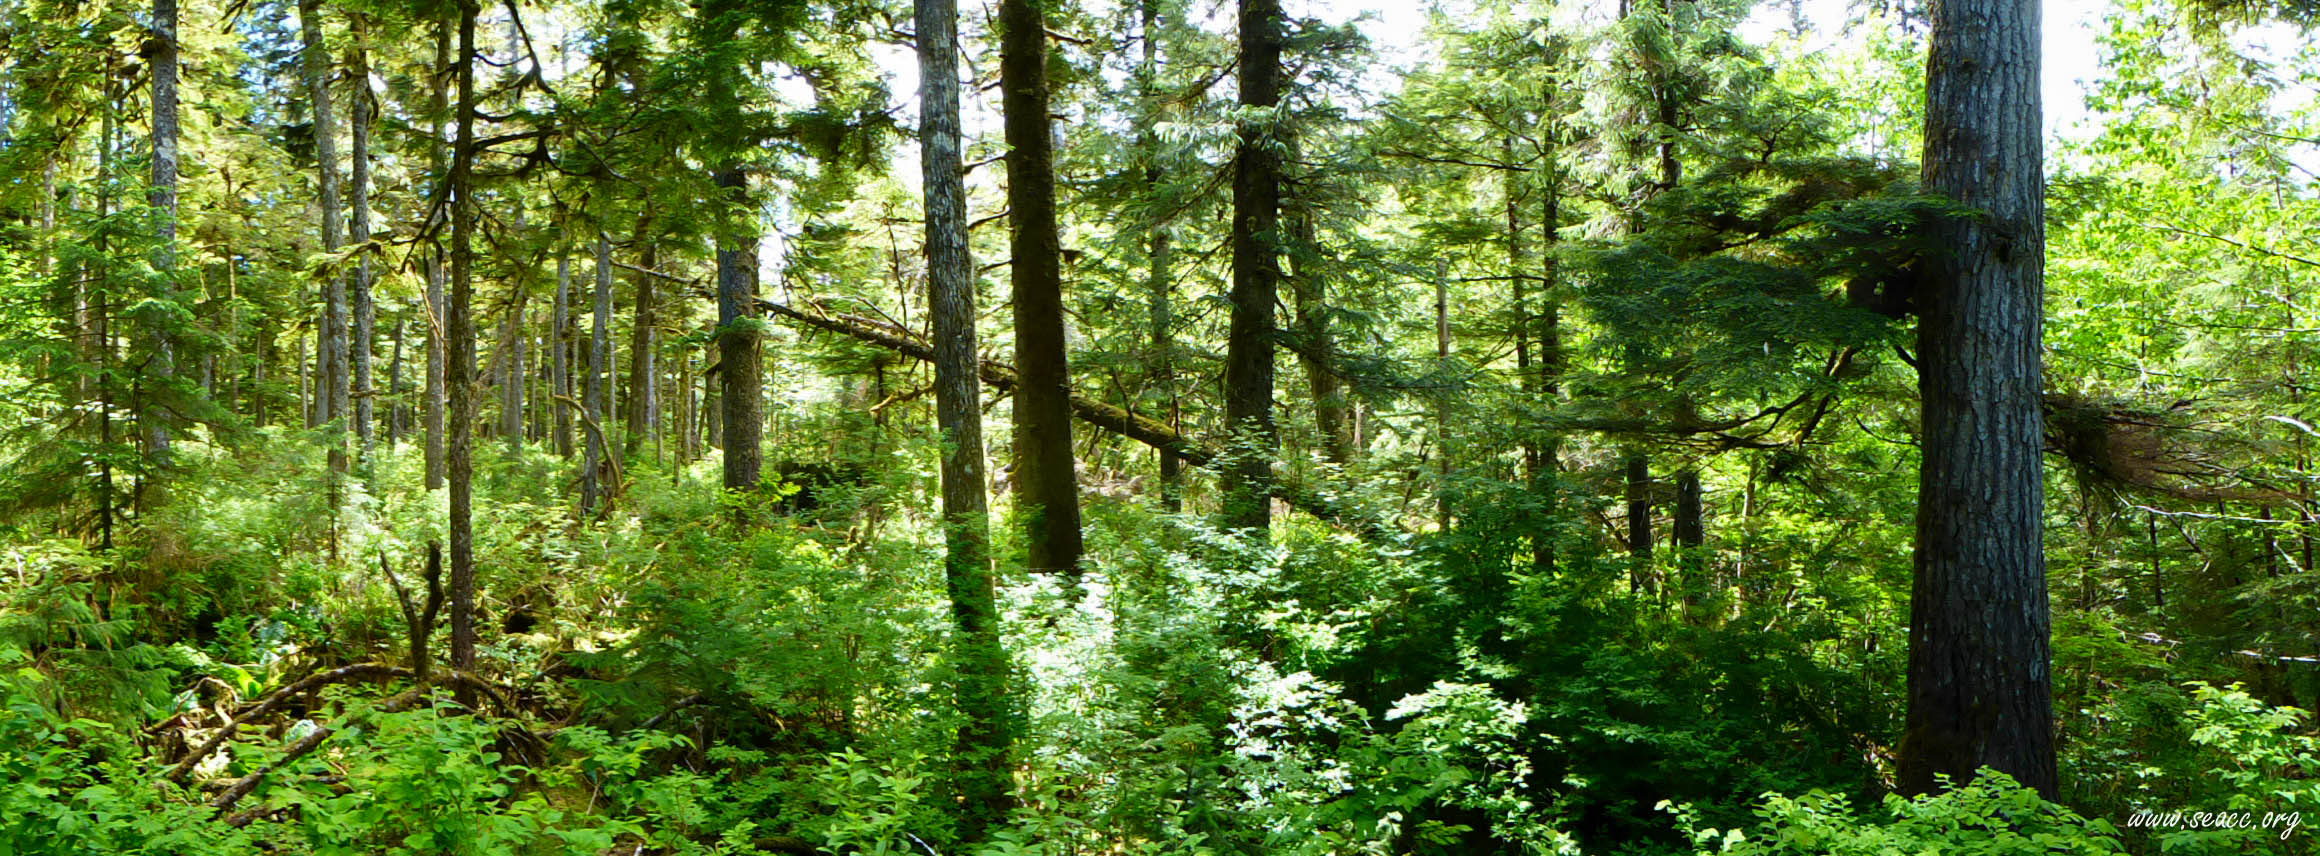 Forest_panorama.jpg